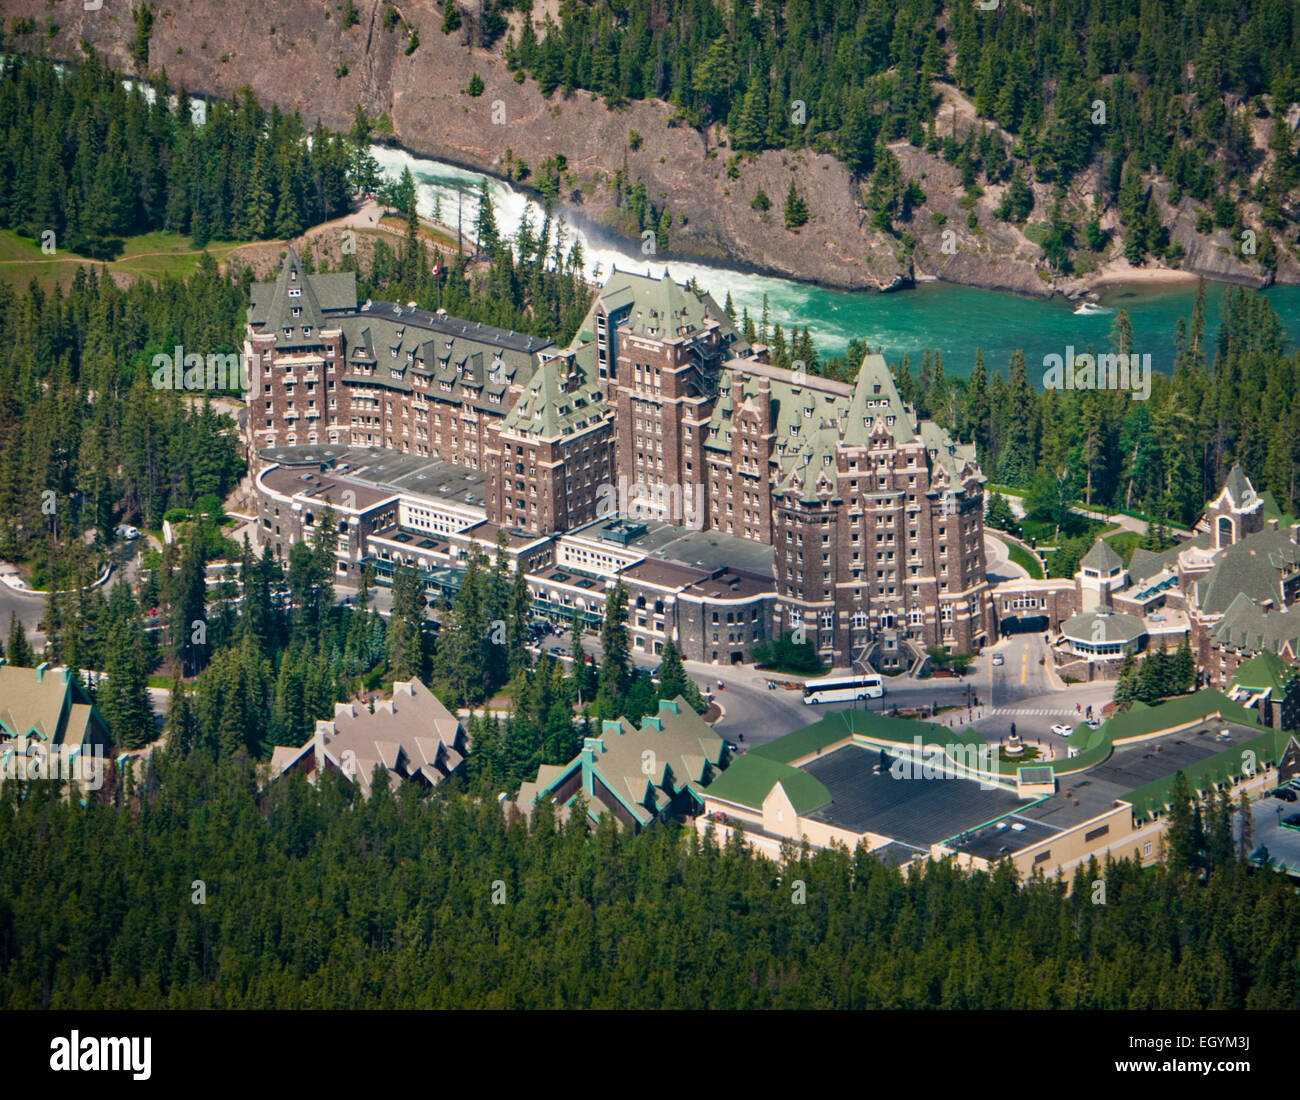 The Fairmont Banff Springs Hotel Banff National Park